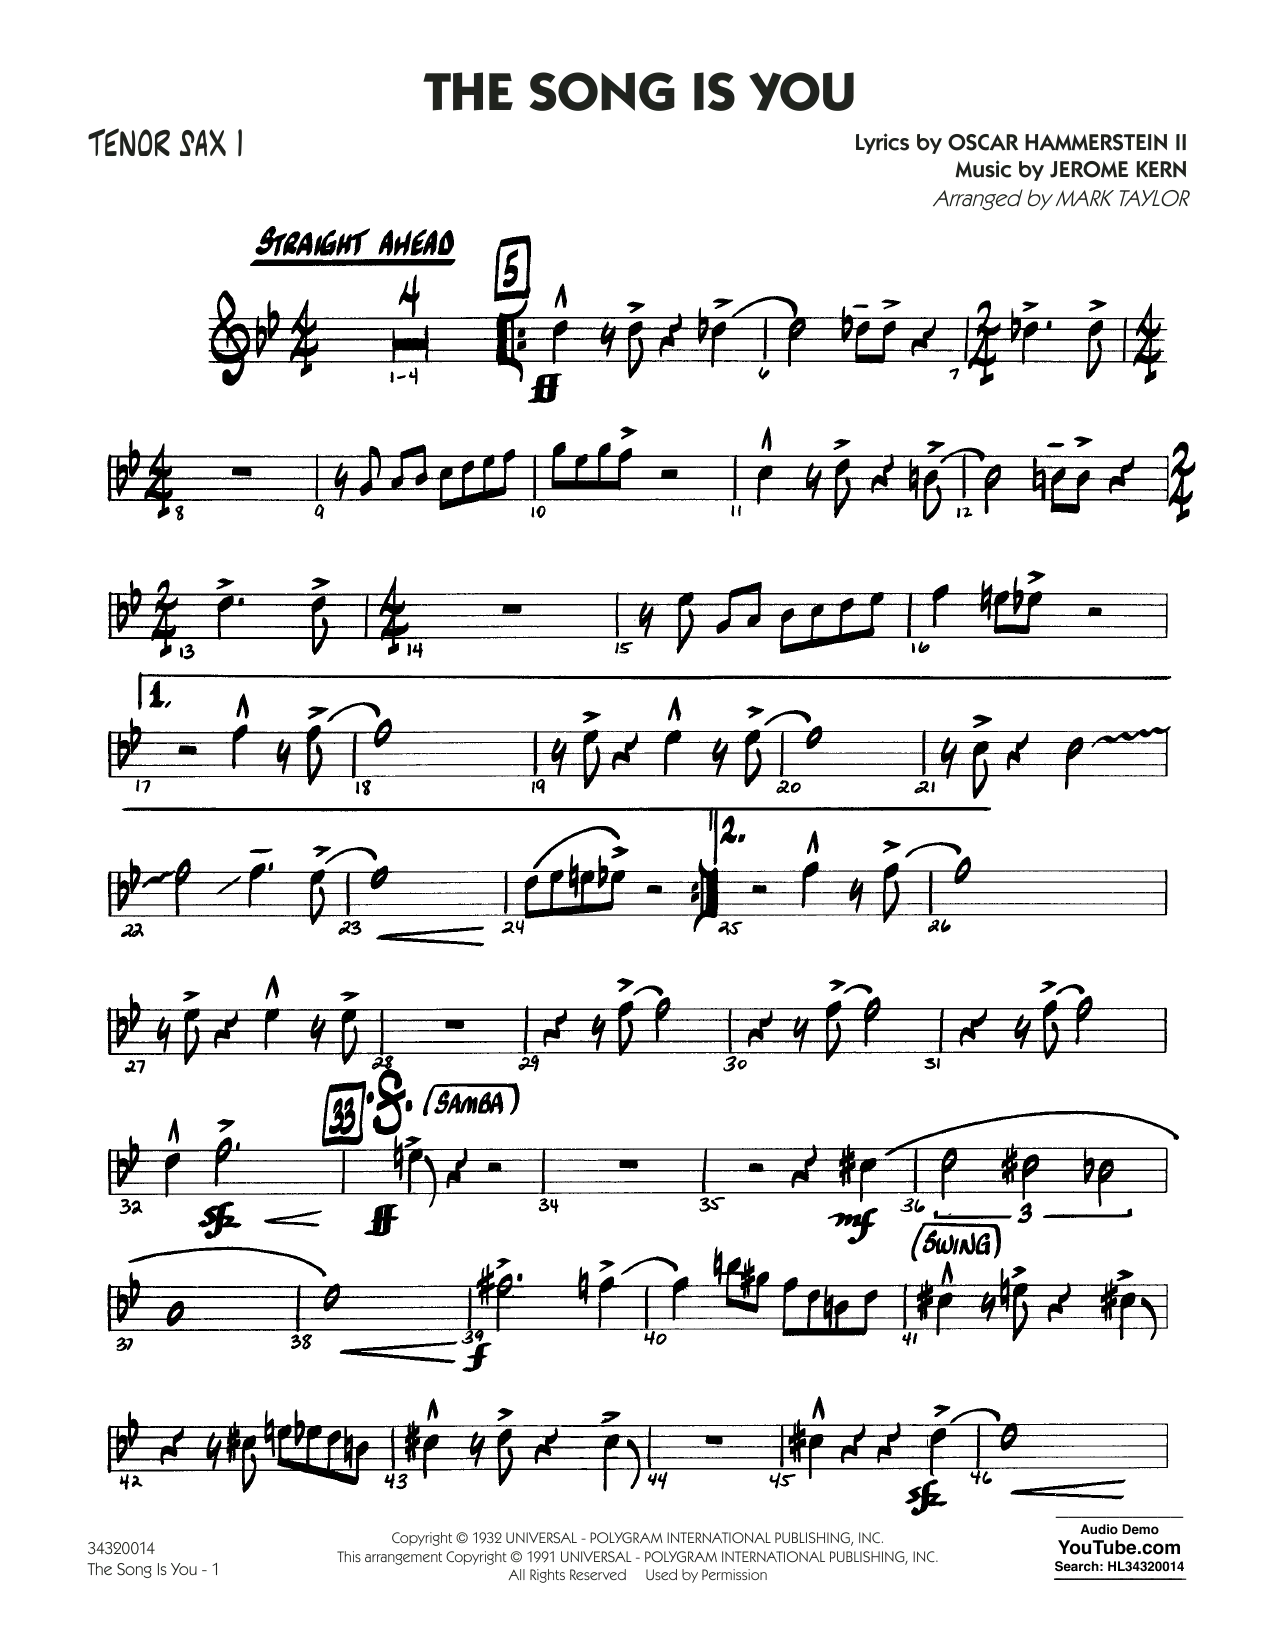 Mark Taylor The Song Is You - Tenor Sax 1 sheet music notes and chords. Download Printable PDF.